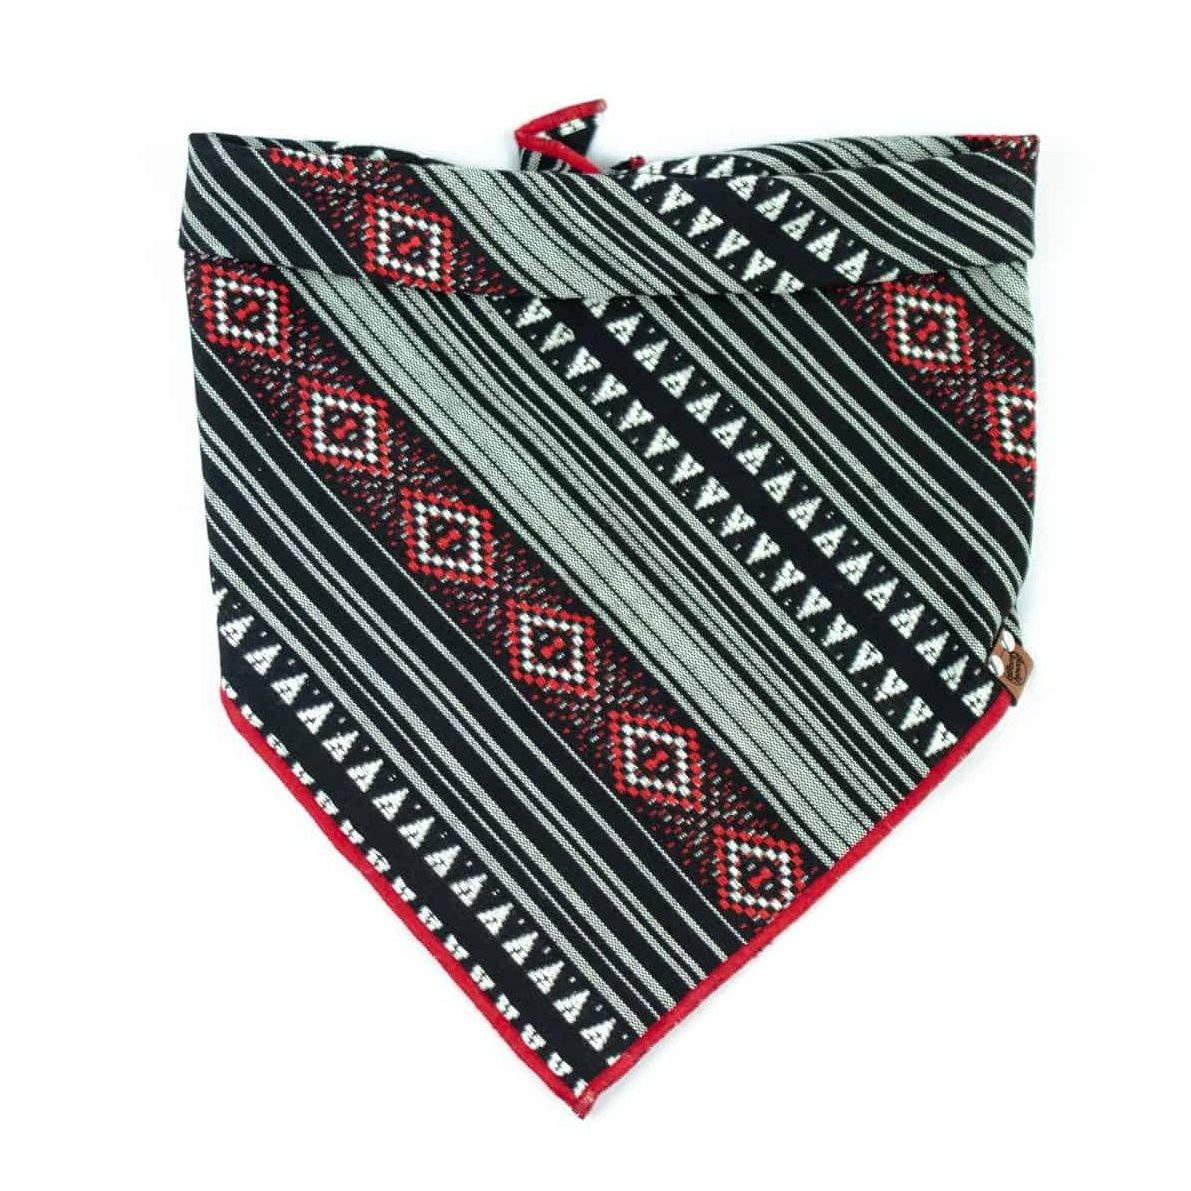 Red and Black Bohemian Geometric Patterned Dog Bandana